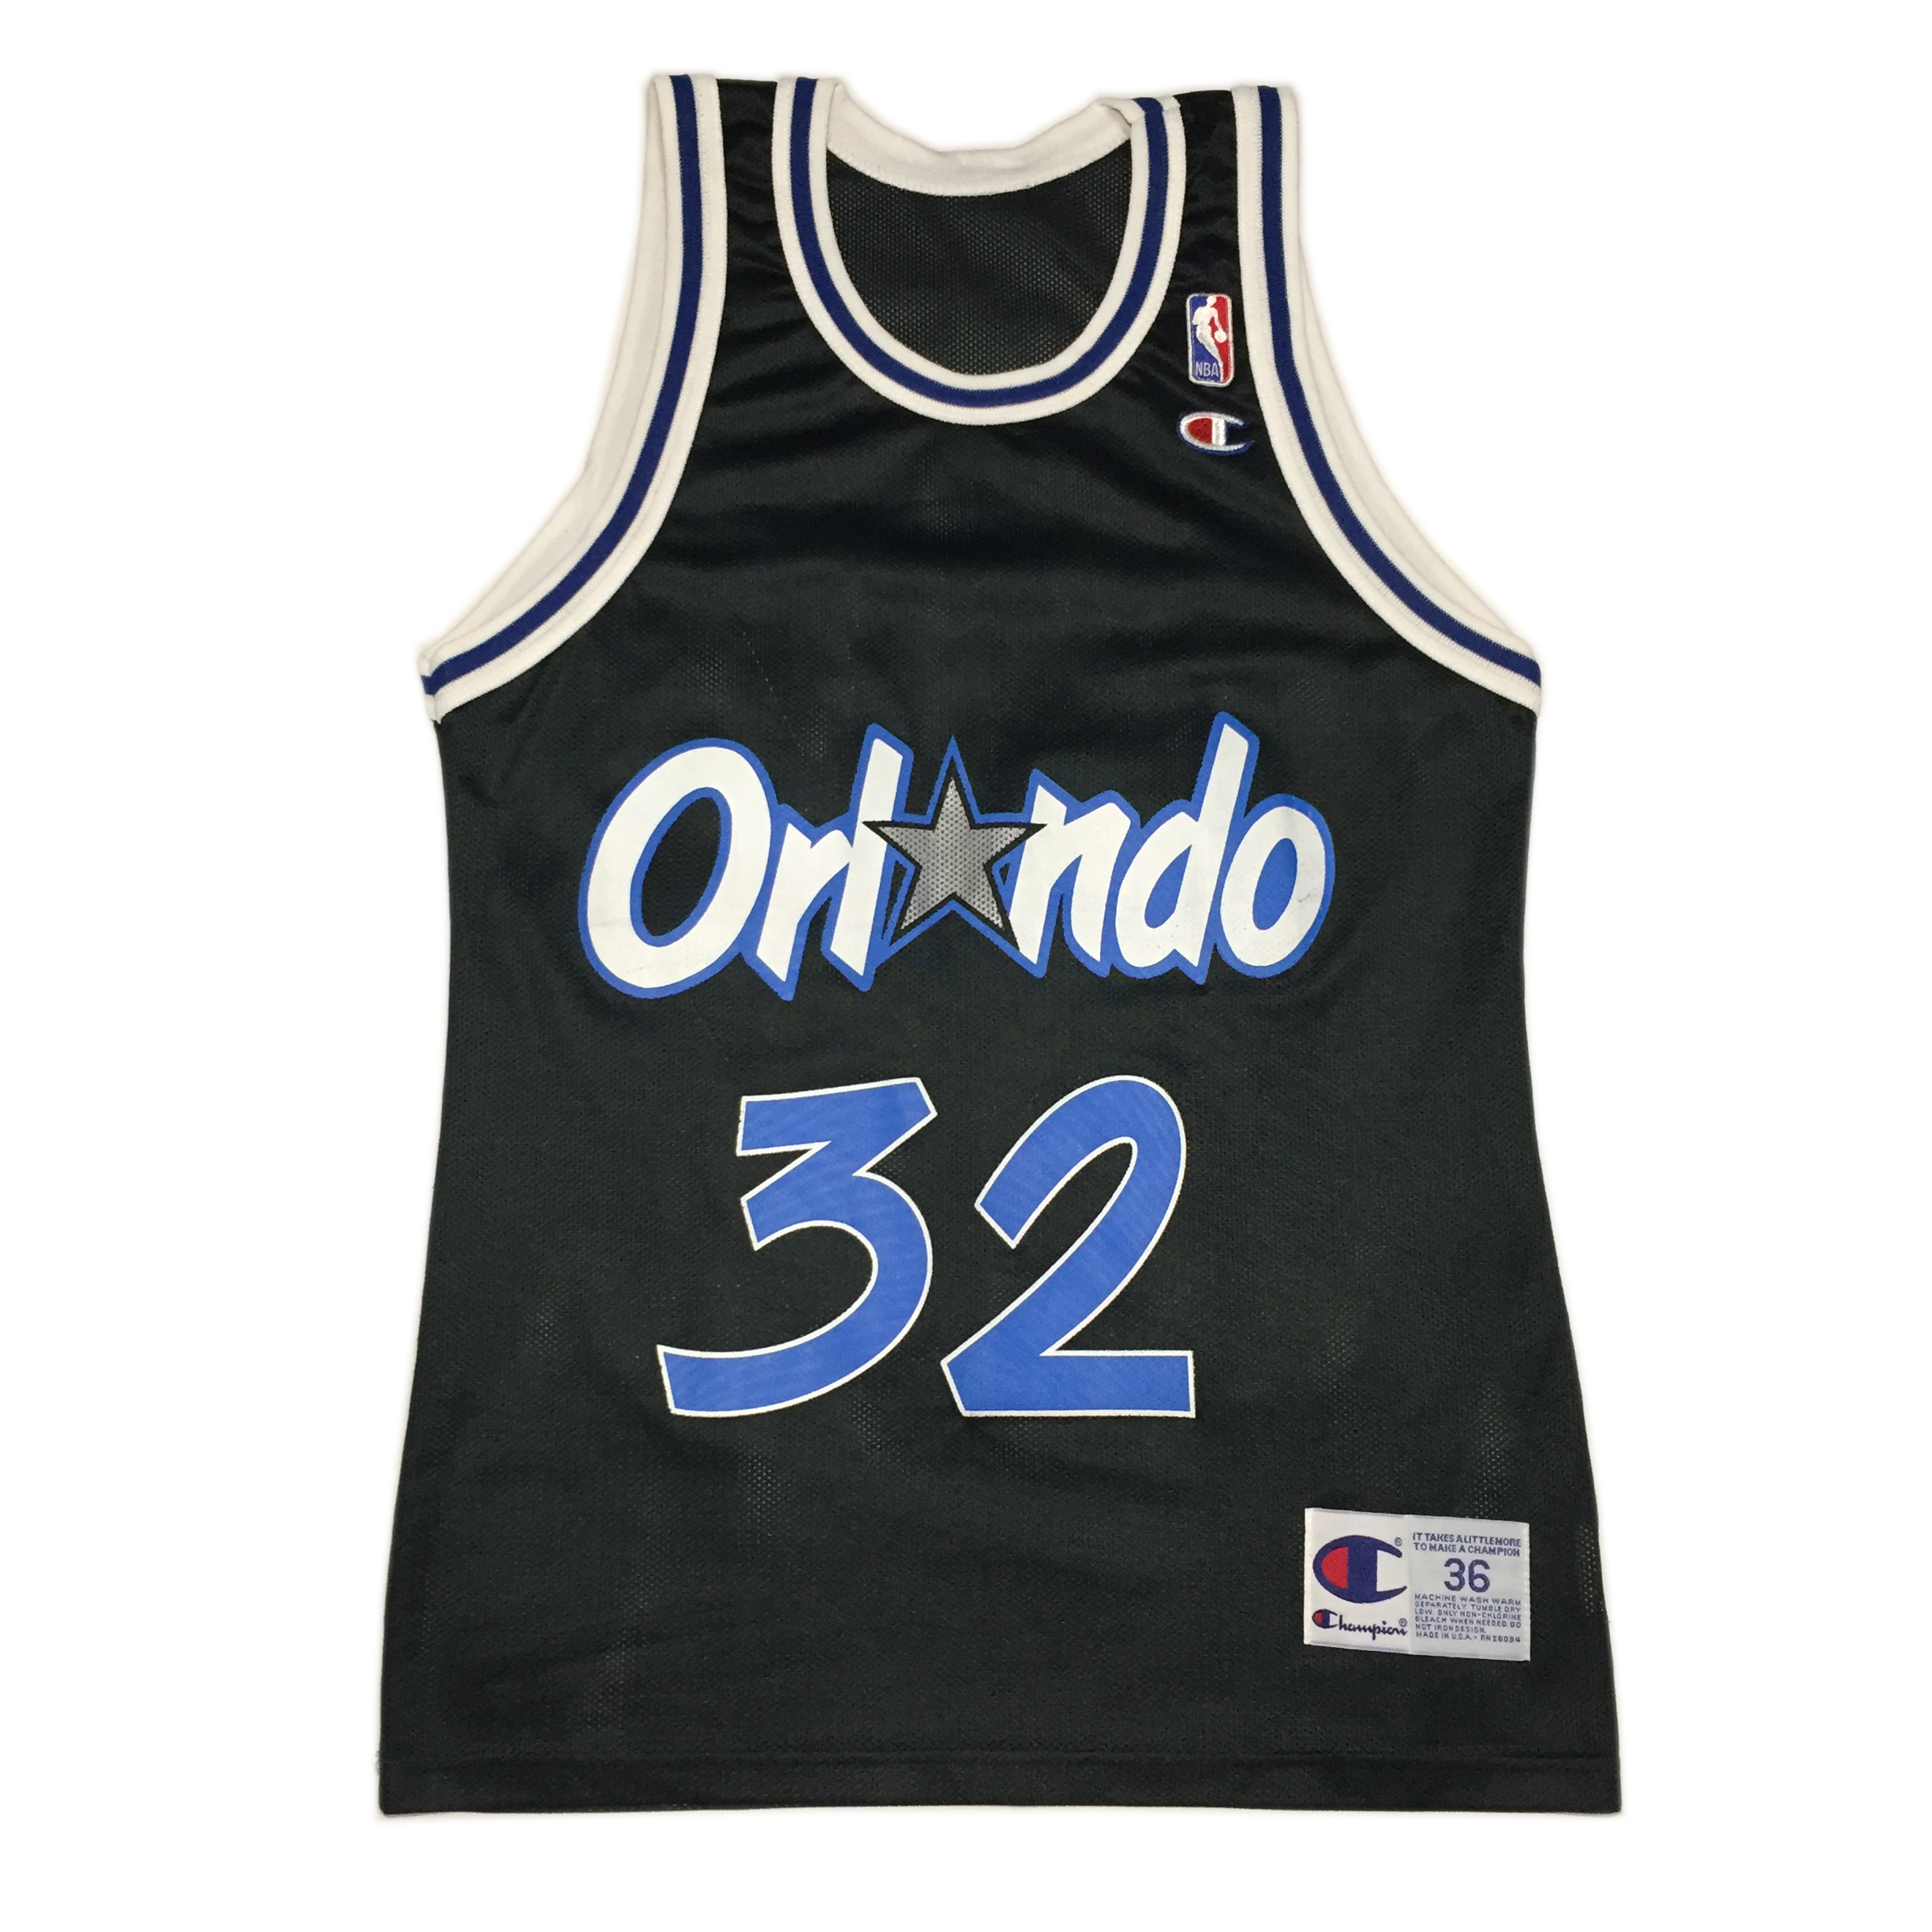 4d4bd3a1d8f Champion ×. VINTAGE CHAMPION SHAQUILLE O'NEAL SHAQ 32 ORLANDO MAGIC JERSEY  IN BLACK